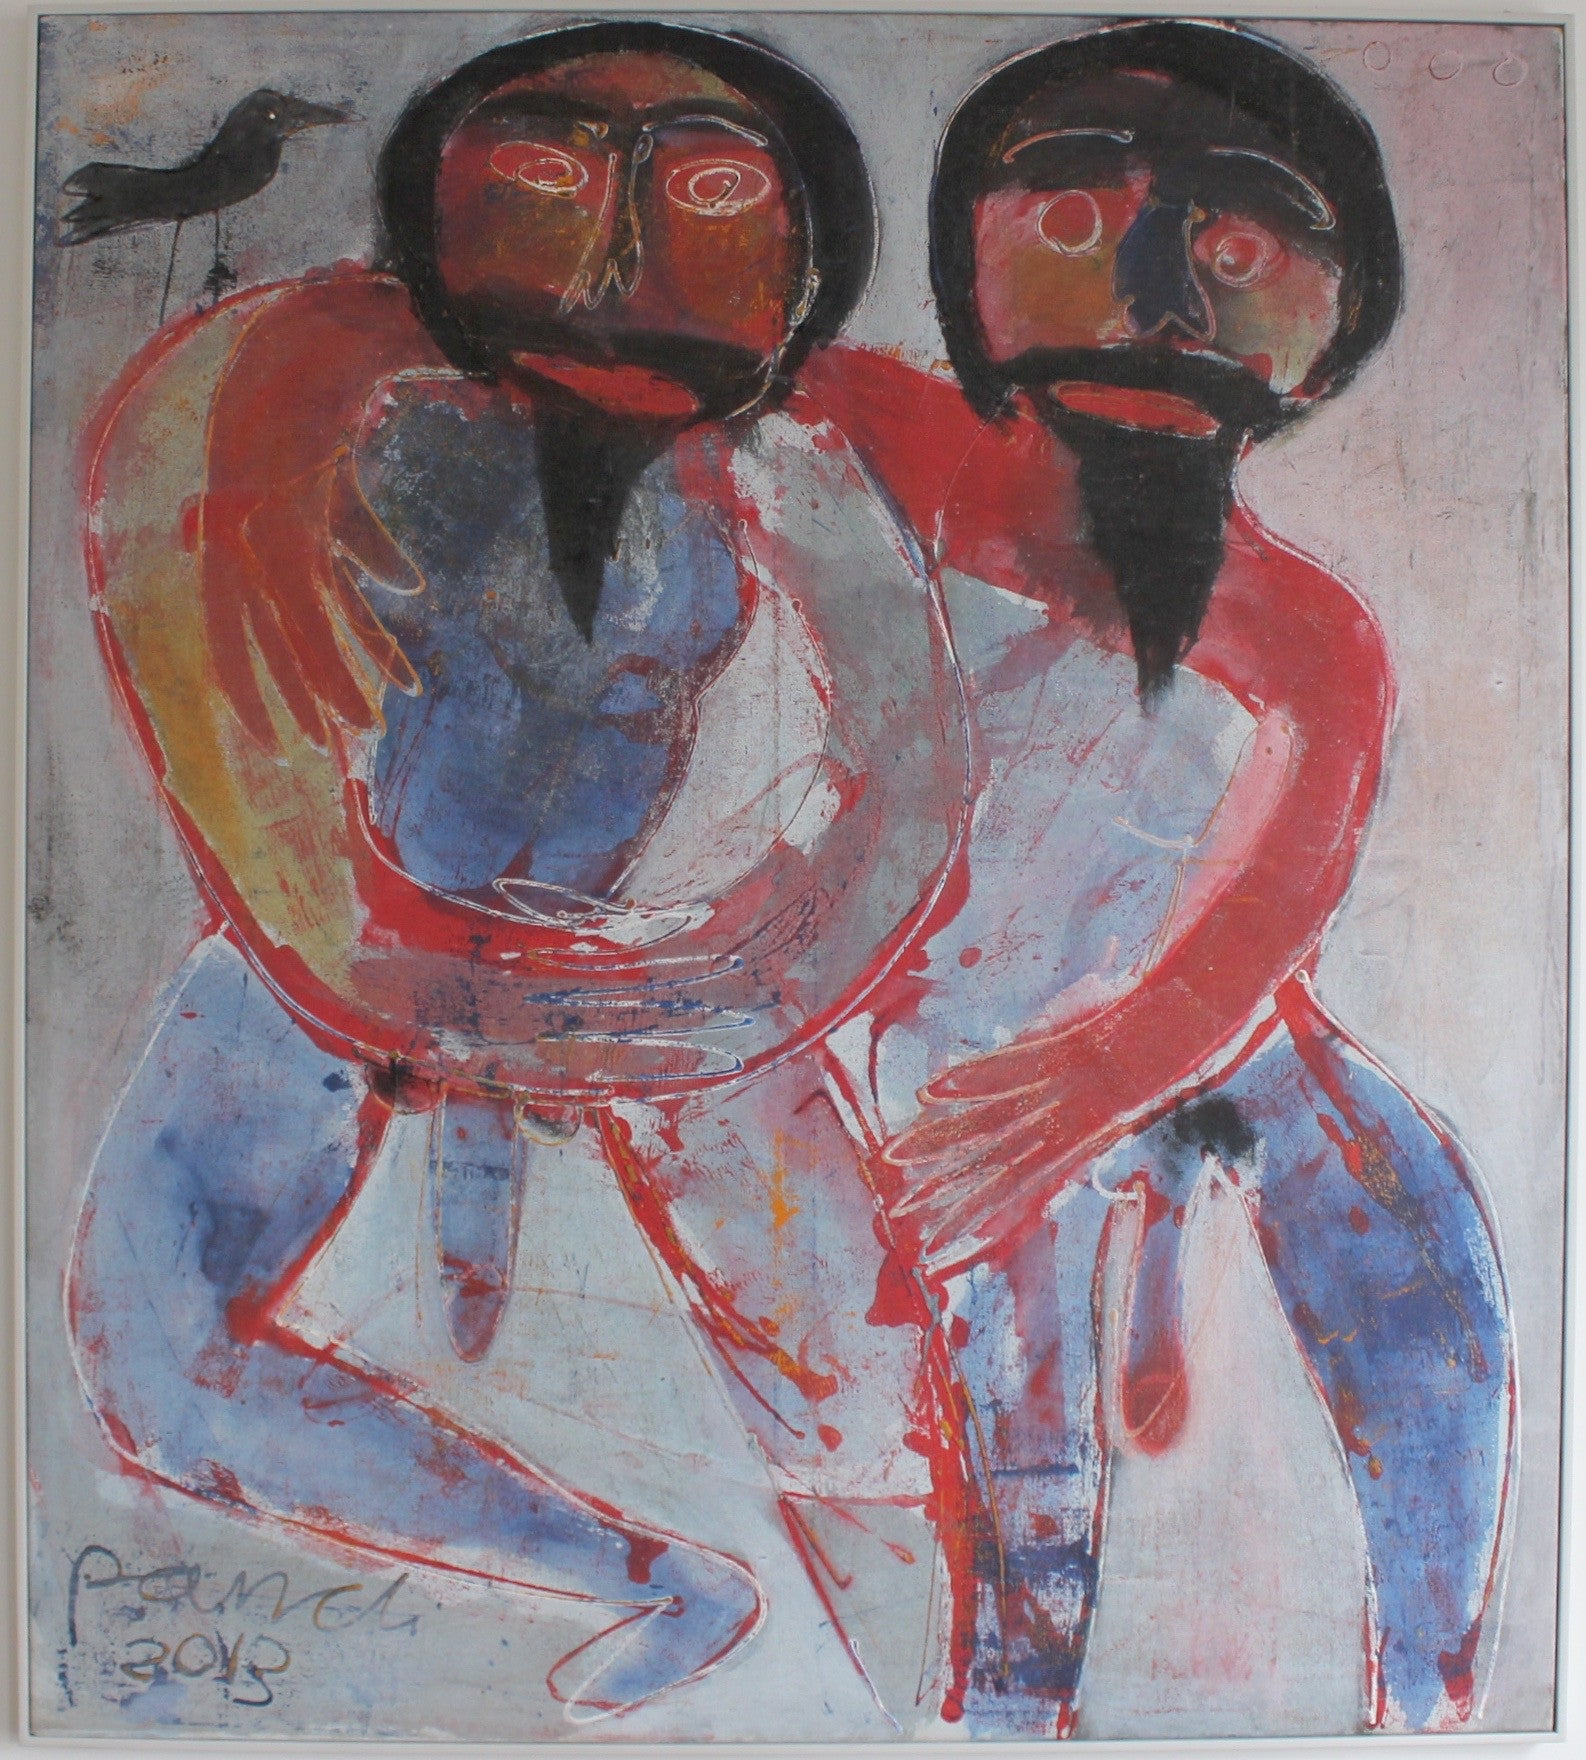 'Two Bearded Men' by Pandi (I Nyoman Sutaria) (2013)